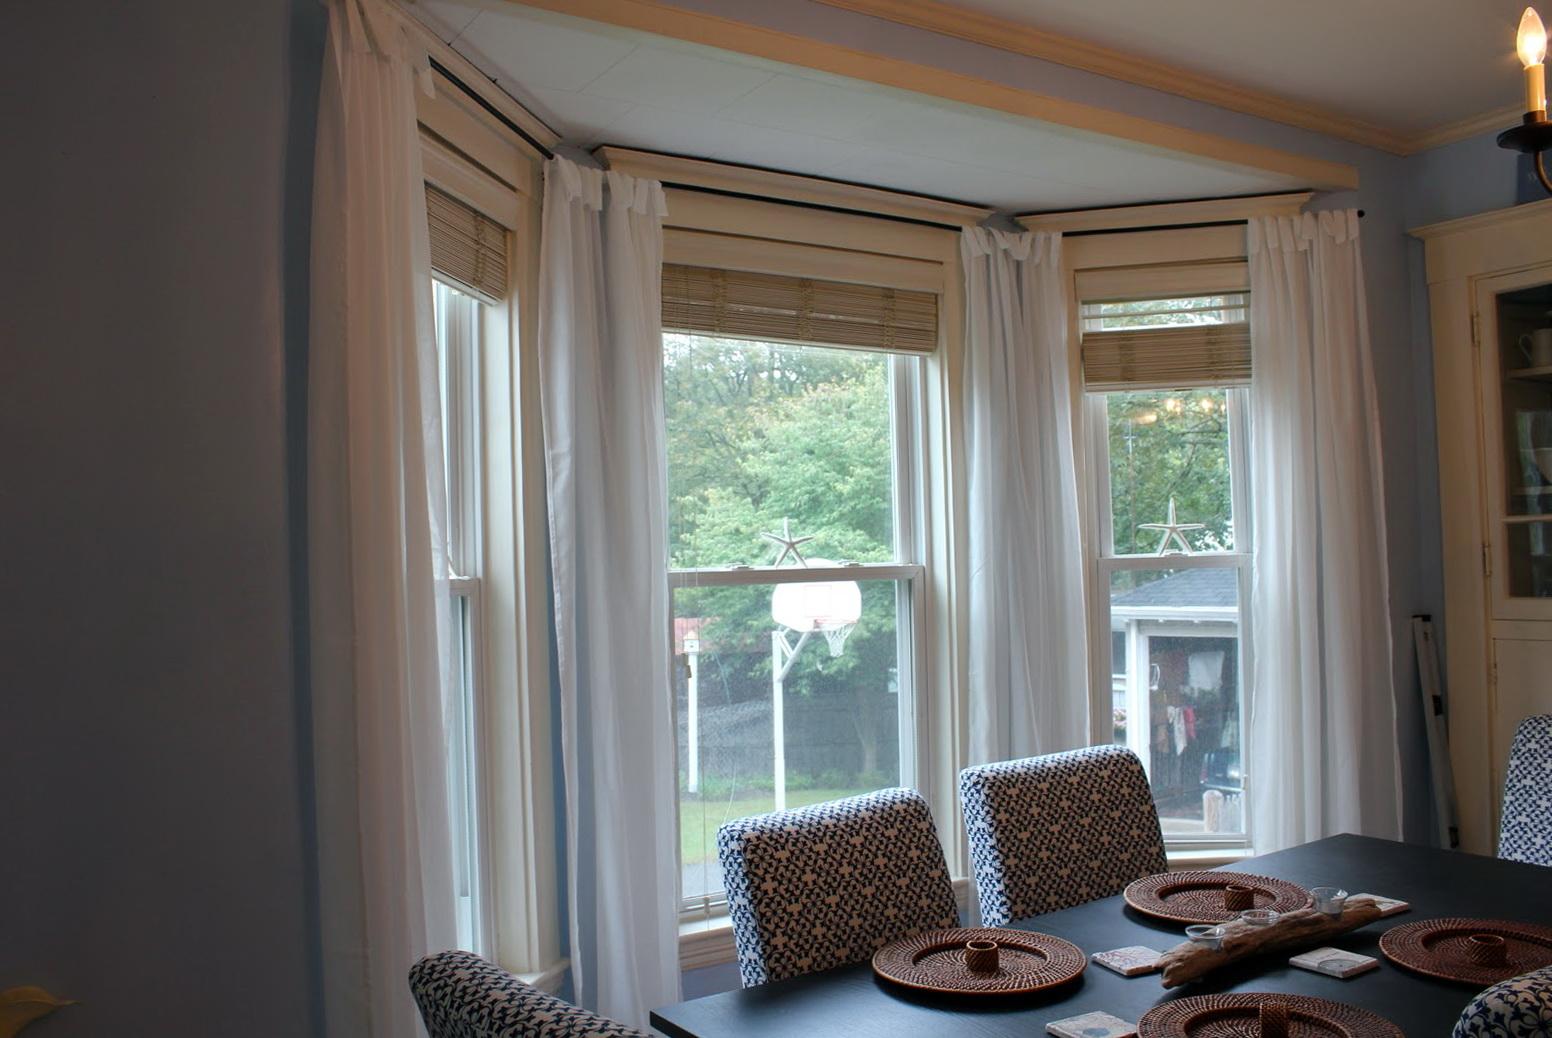 Crate And Barrel Bedroom Curtains For Dining Room Bay Window Home Design Ideas